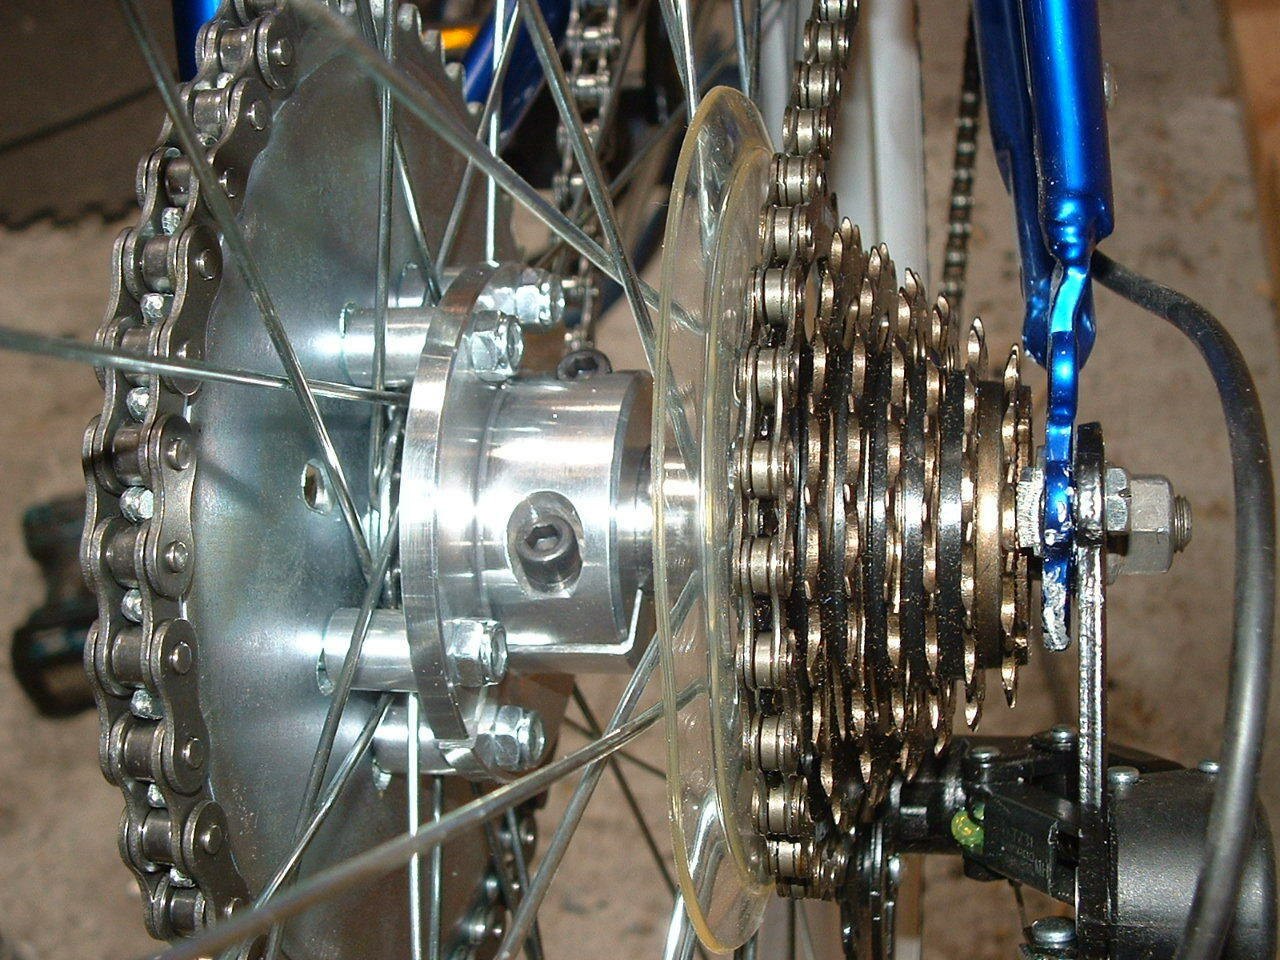 80cc ENGINE KIT REAR WHEEL  HUB ADAPTER FOR THE FREEWHEEL BIKES 1'' INCH BORE.     hastened to see